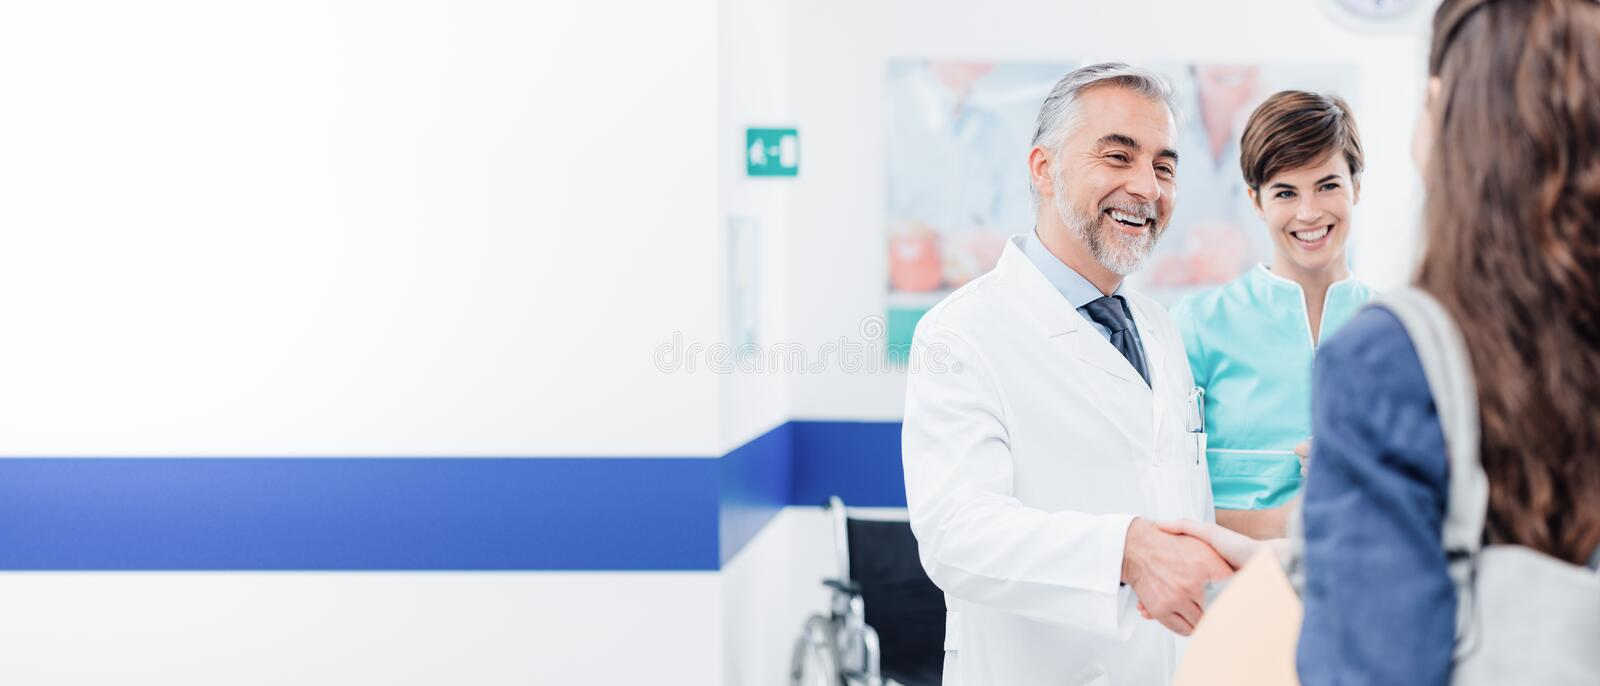 Doctor and patient shaking hands. Doctor and female patient meeting at the hospital and shaking hands, healthcare and medicine banner stock photo